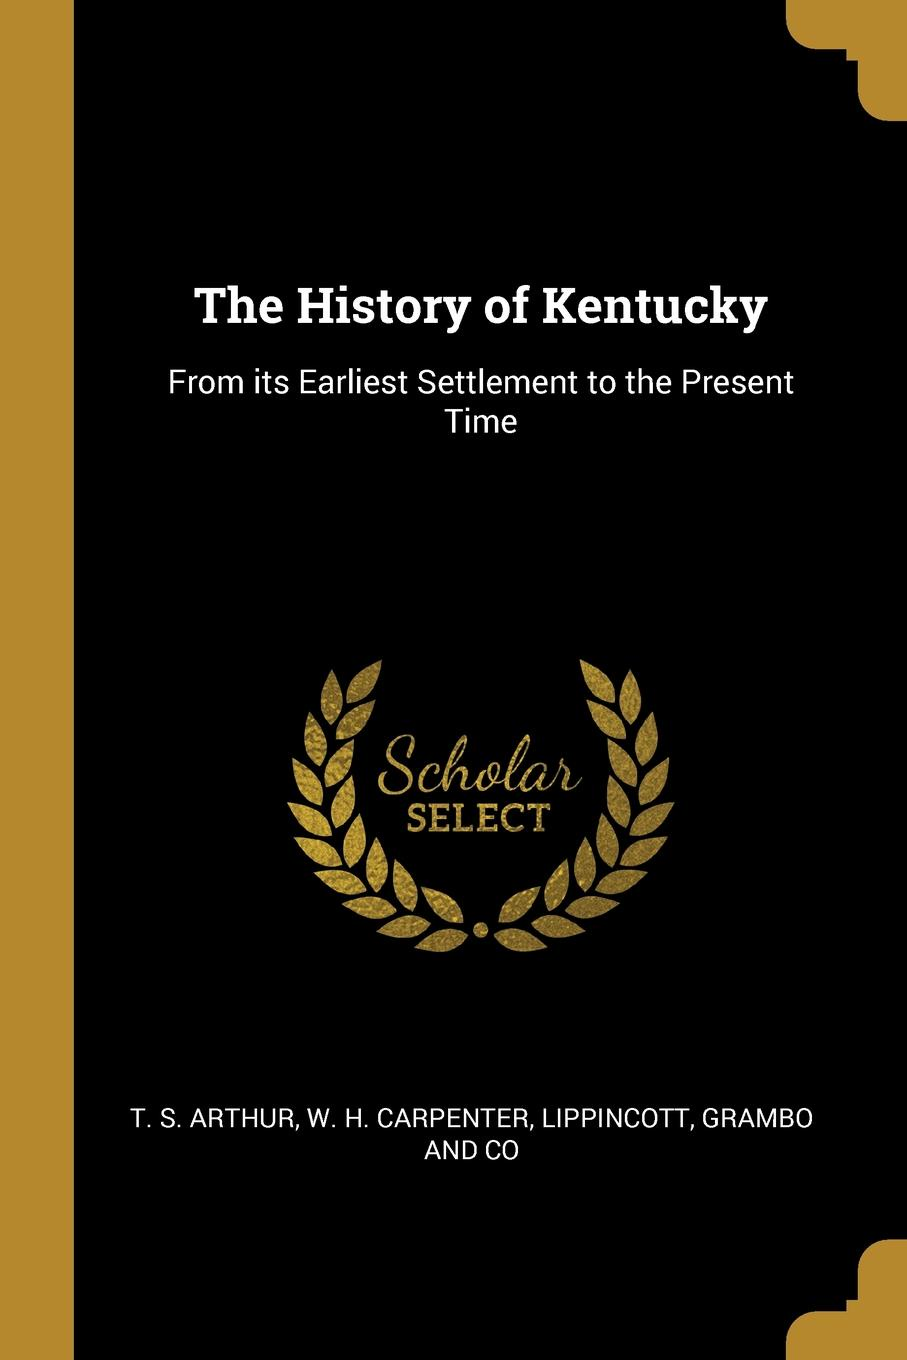 T. S. Arthur, W. H. Carpenter The History of Kentucky. From its Earliest Settlement to the Present Time charles richard tuttle the centennial northwest an illustrated history of the northwest being a full and complete civil political and military history of this great section of the united states from its earliest settlement to the present time